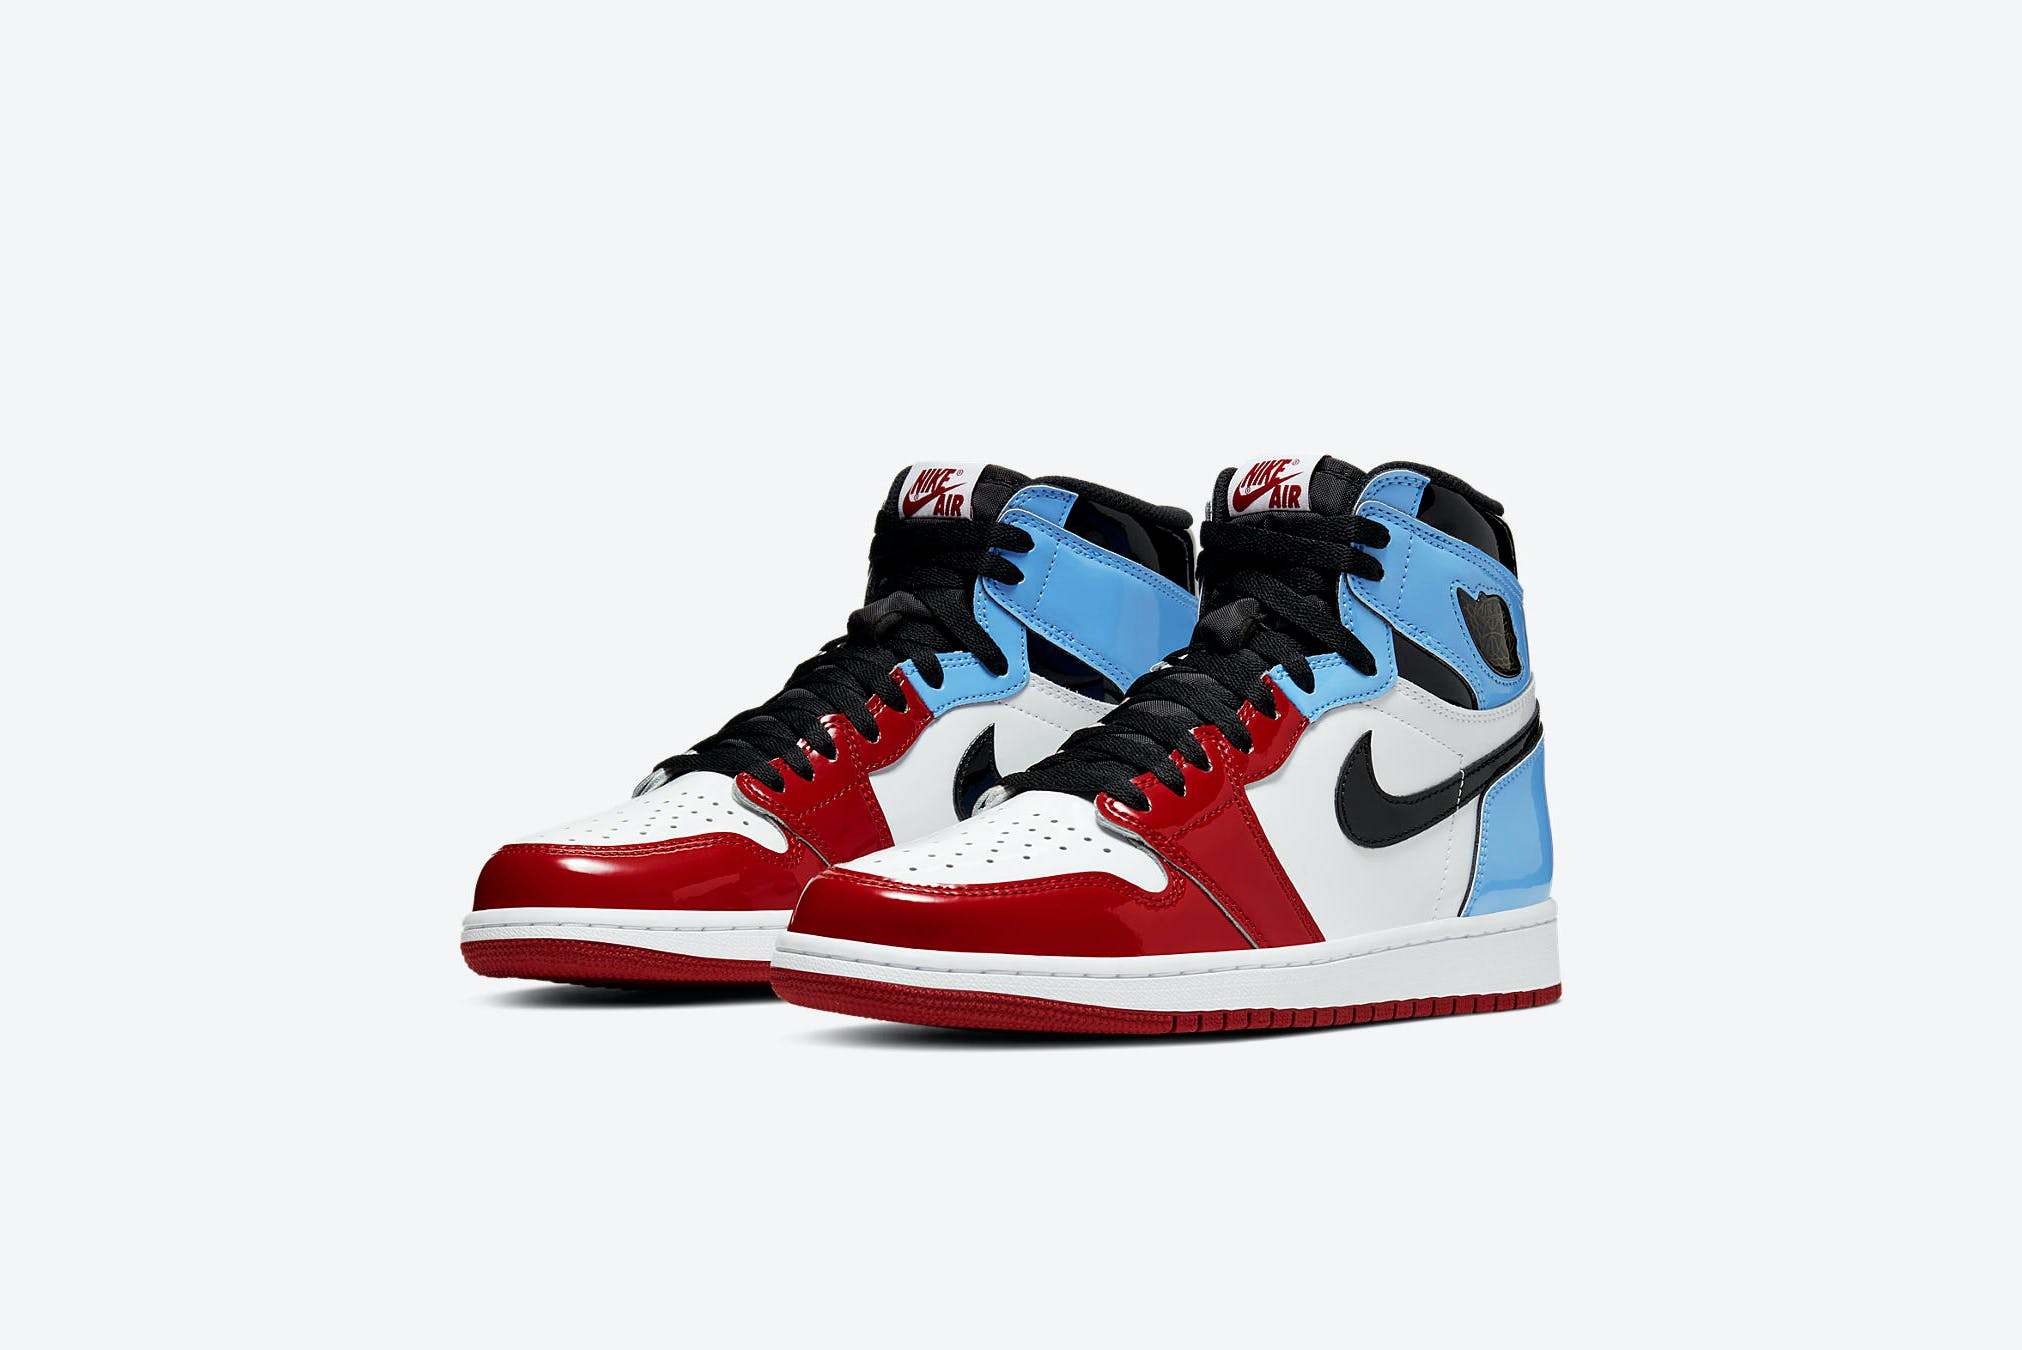 Air Jordan 1 Retro 'Fearless' - CK5666-100